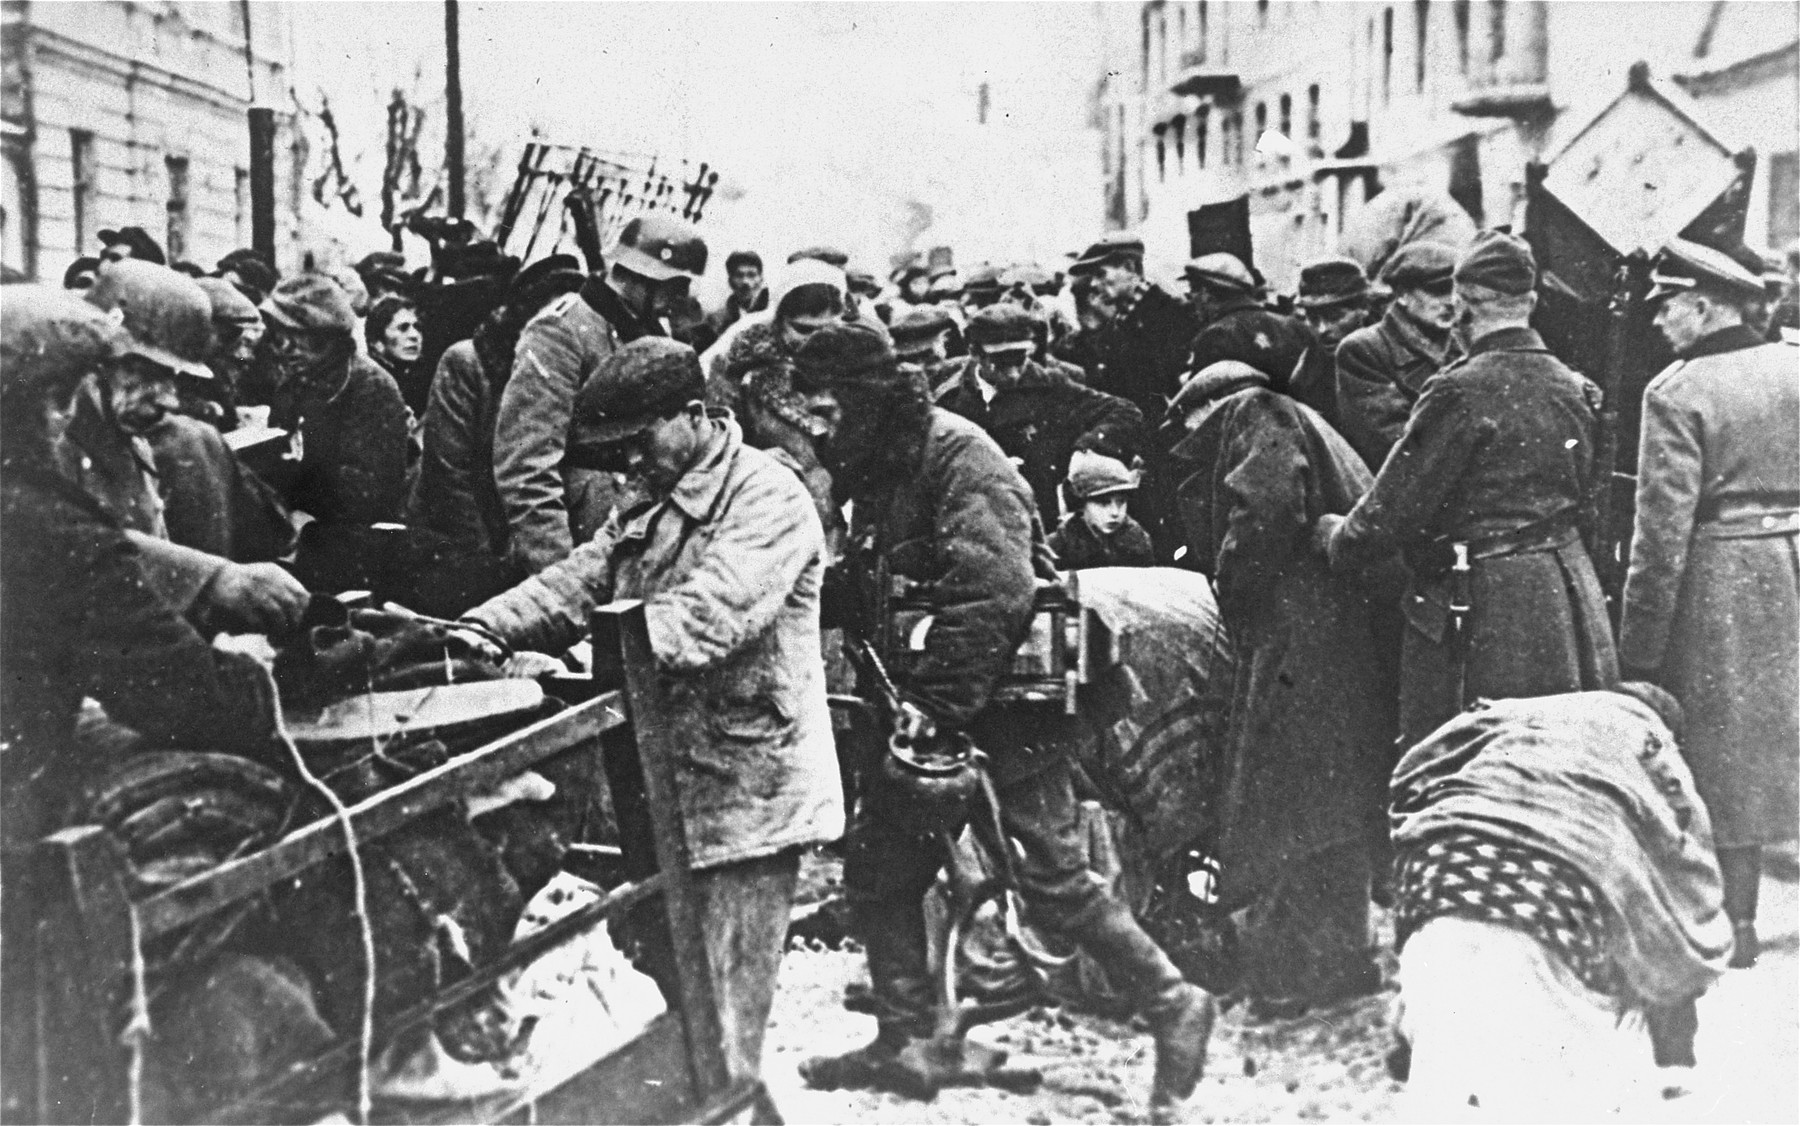 Under police supervision, Jews move their belongings into the Grodno ghetto.